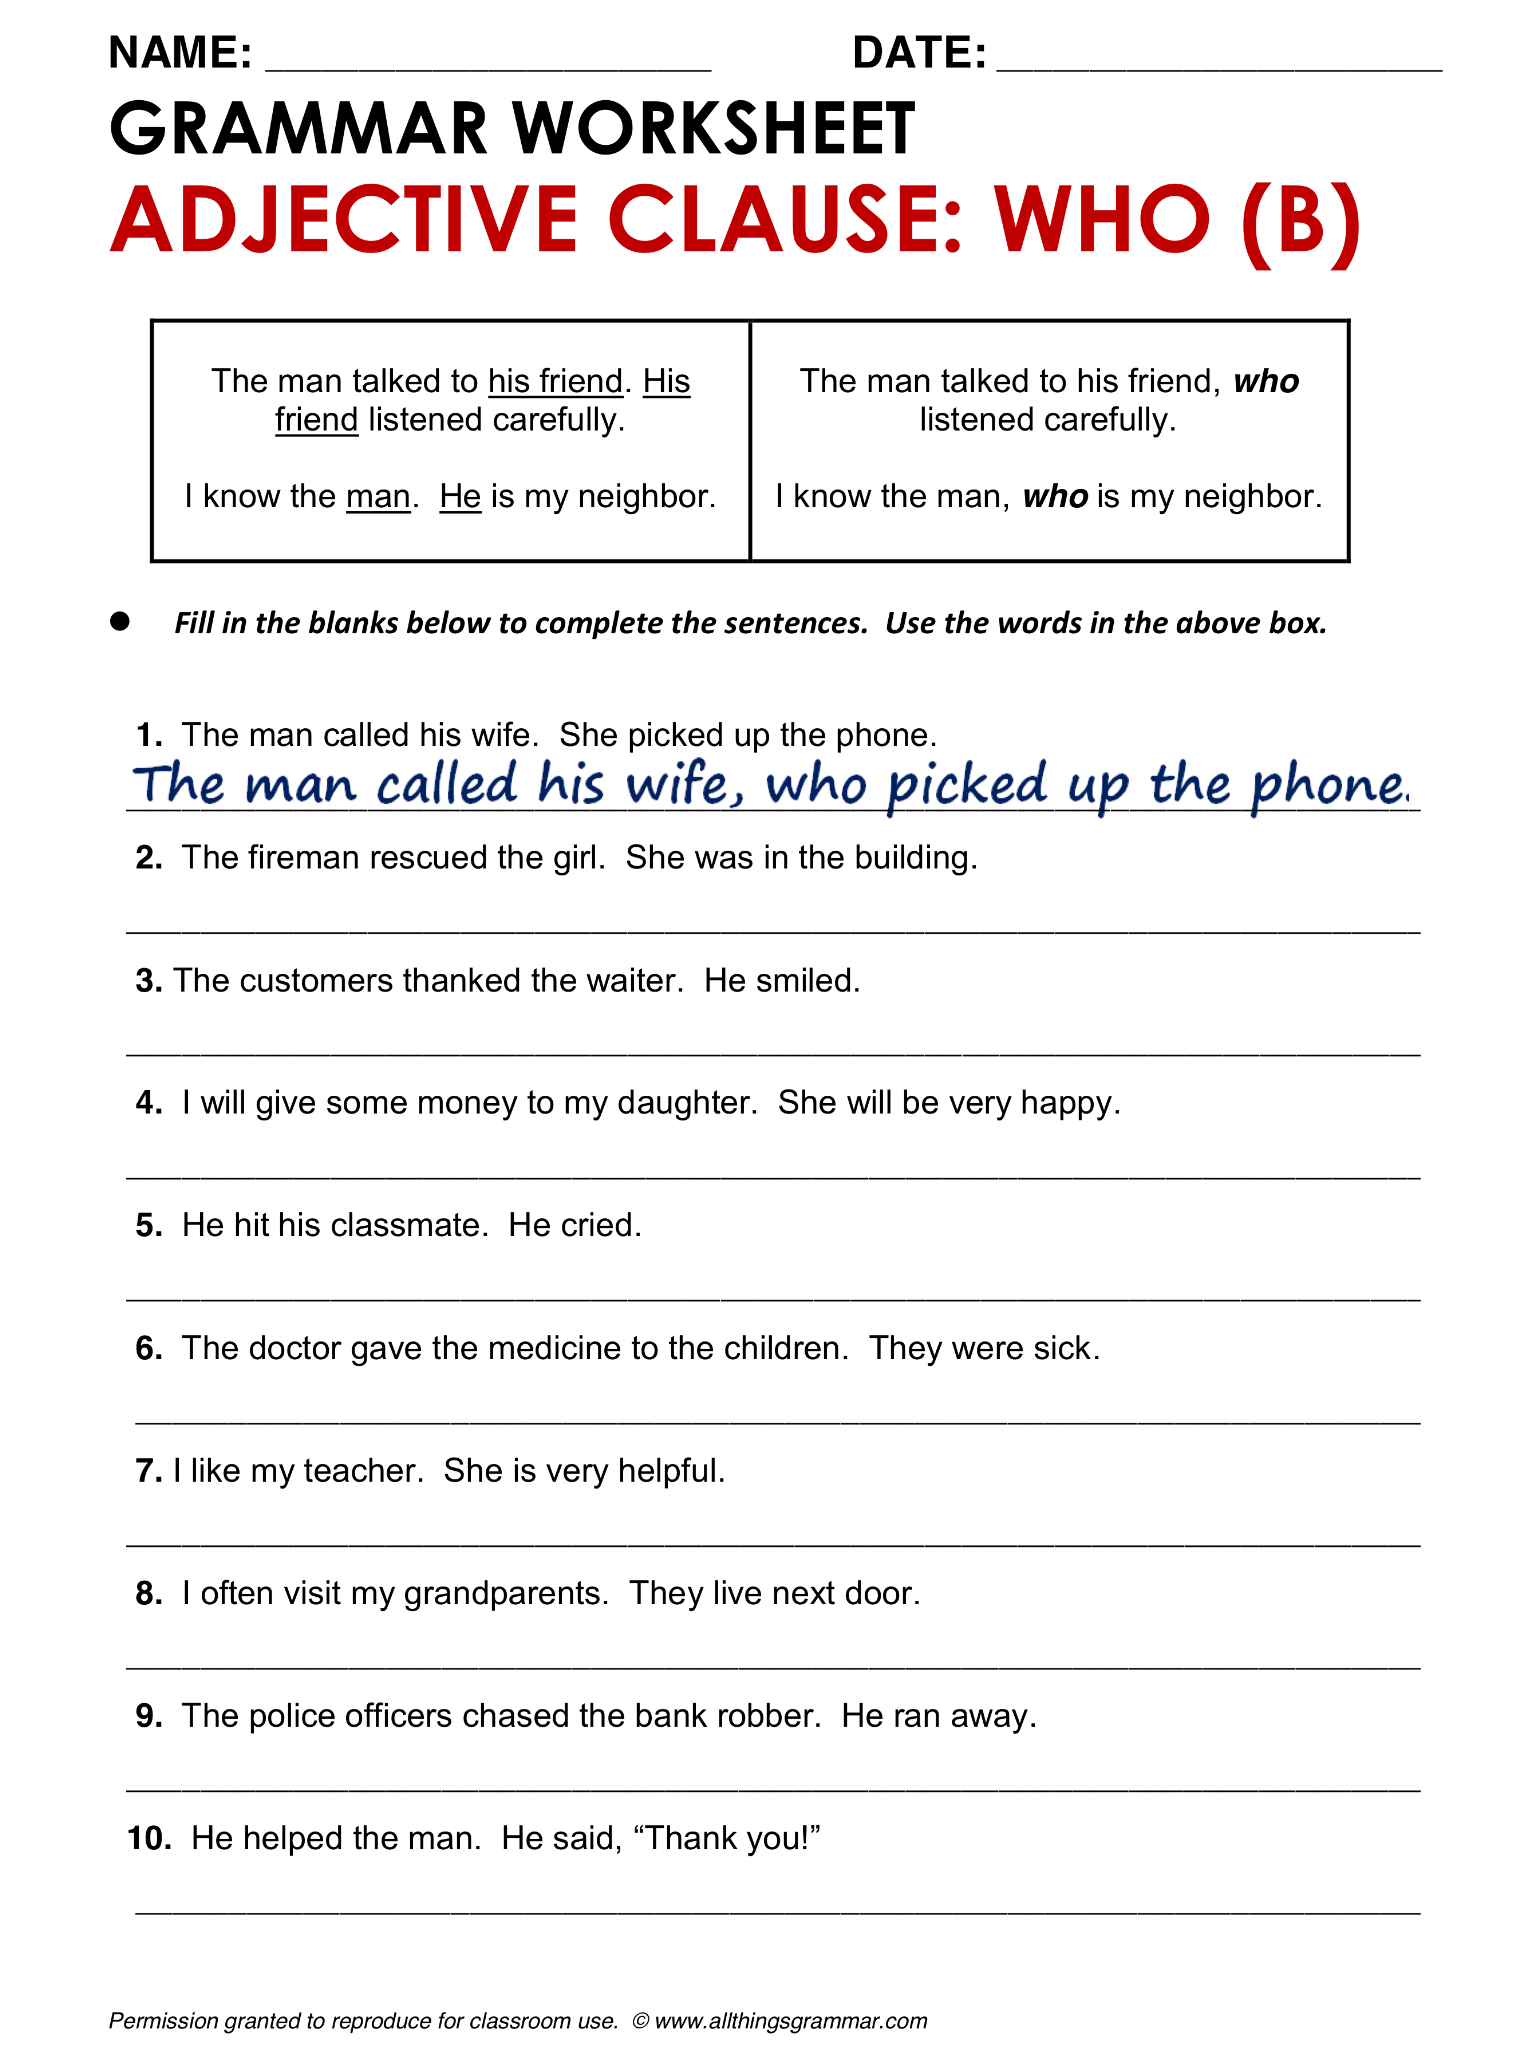 English Grammar Adjective Clause Who B allthingsgrammar – Adjective Clauses Worksheet